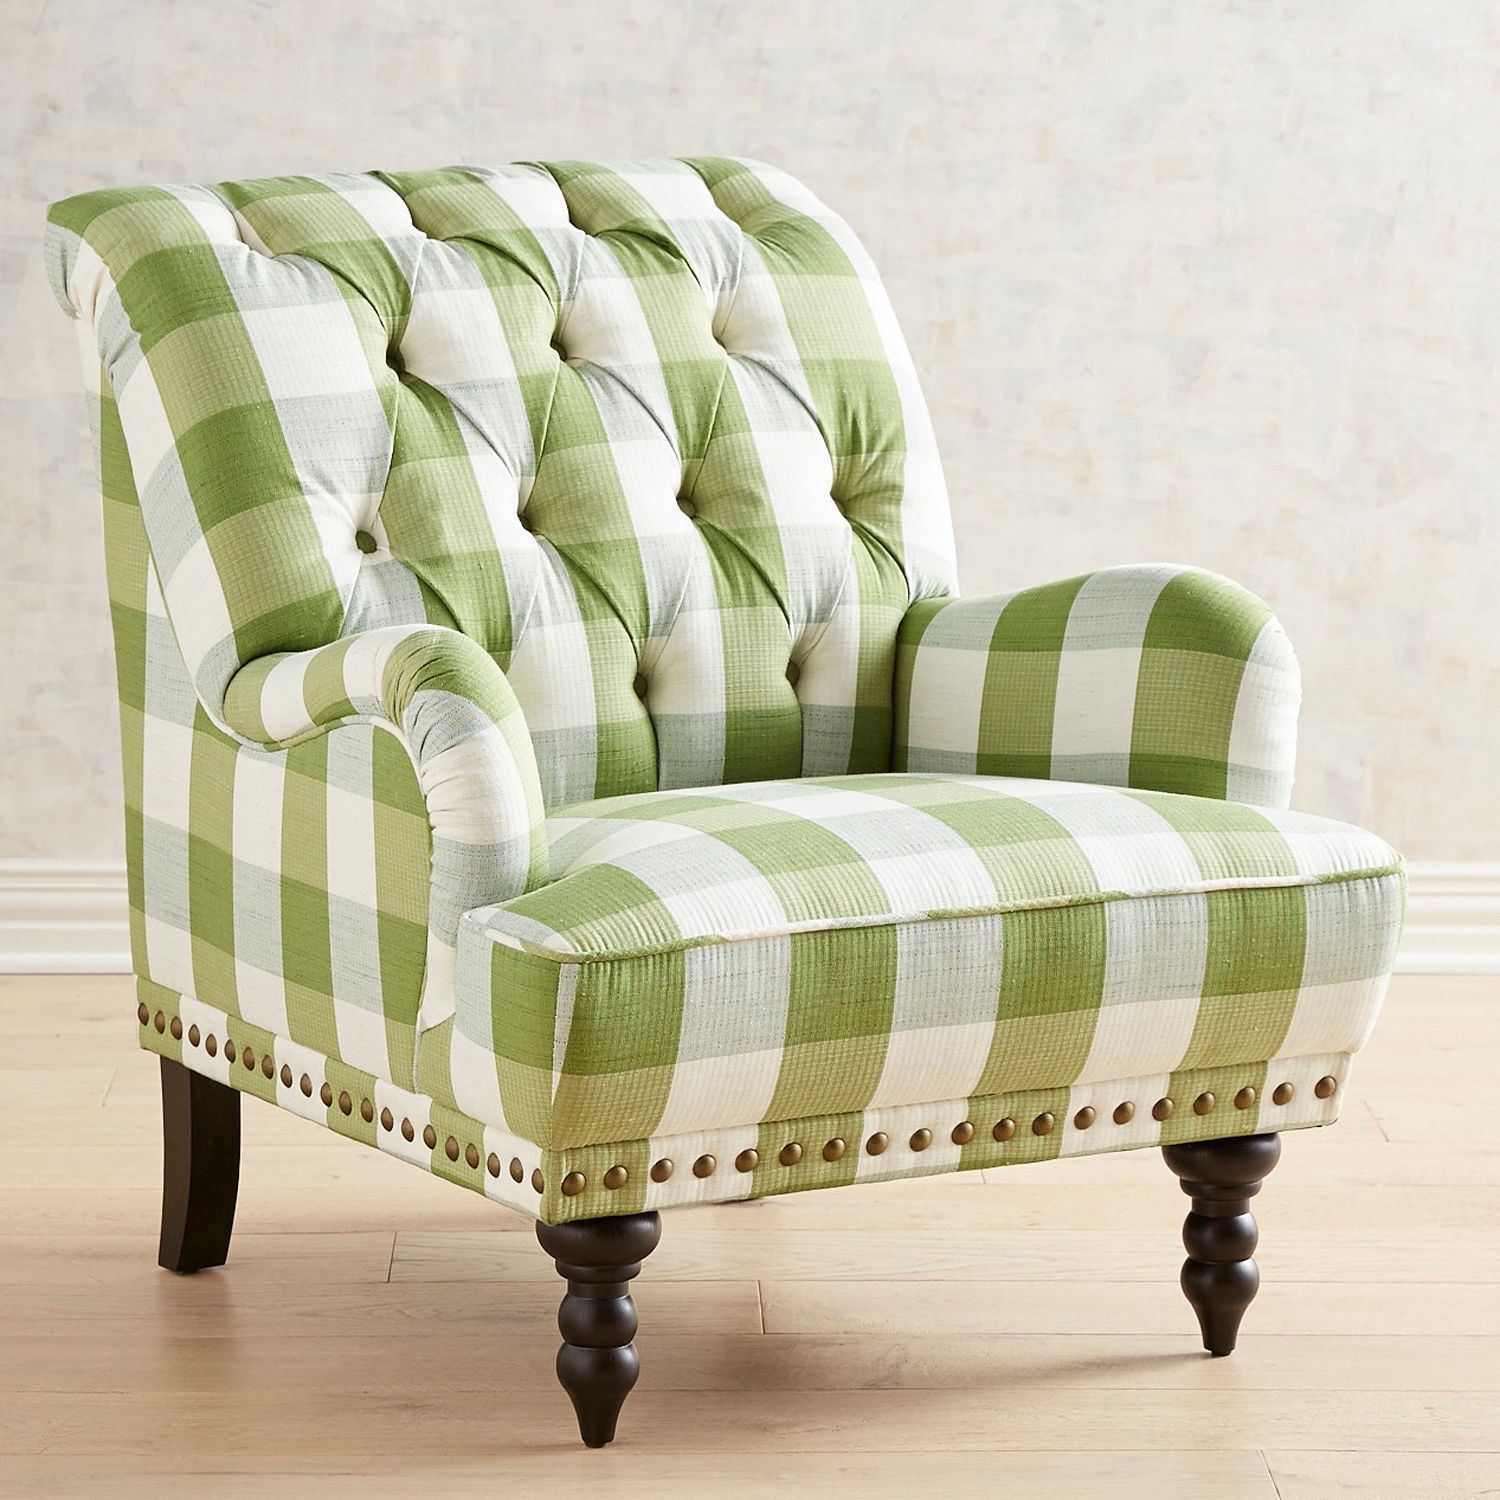 Green Upholstered Chair Green Buffalo Check Upholstered Chair